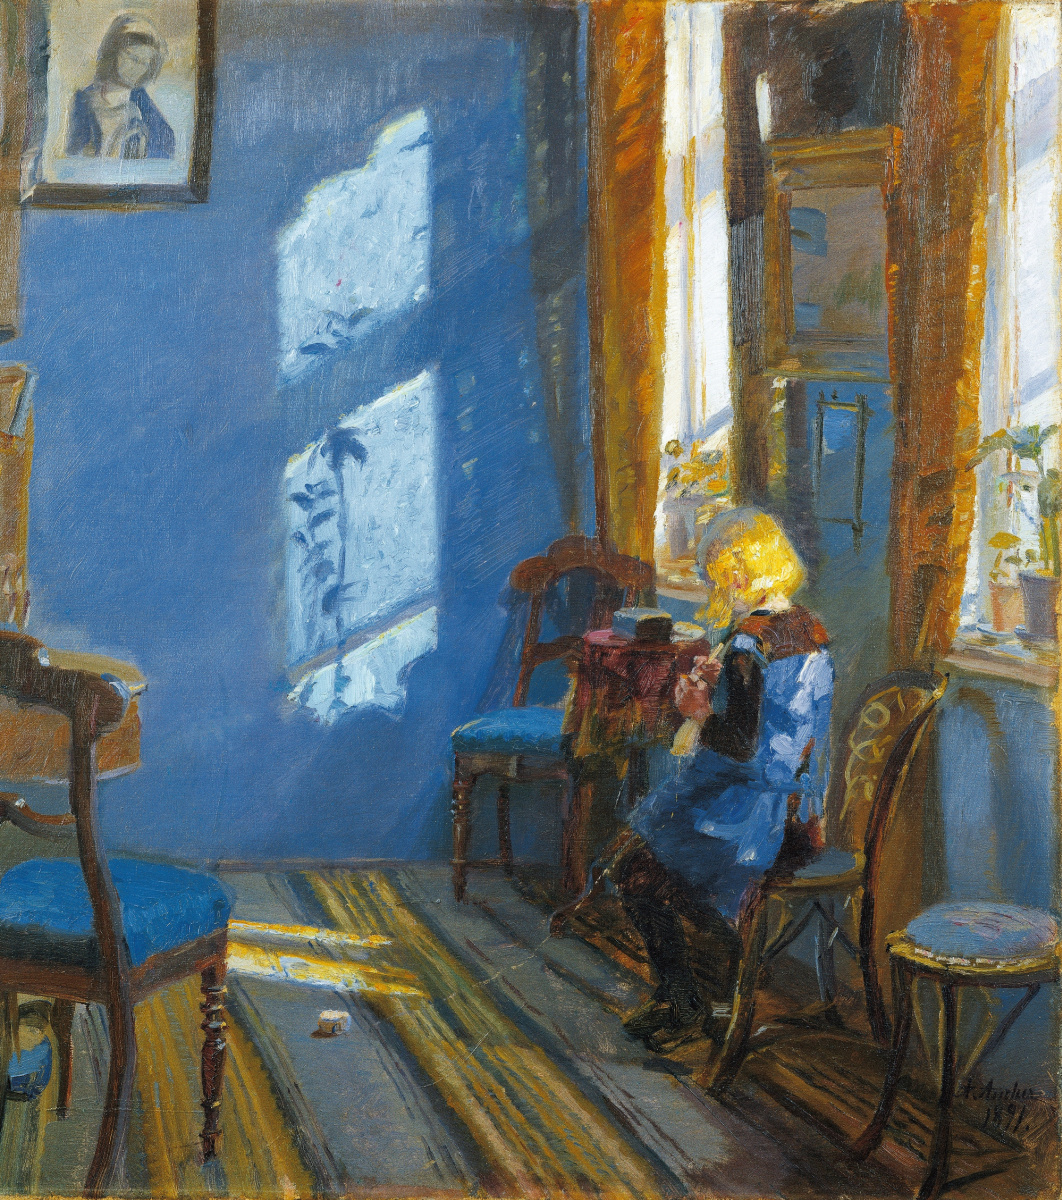 Anna Anchor. Sunlight in the blue room